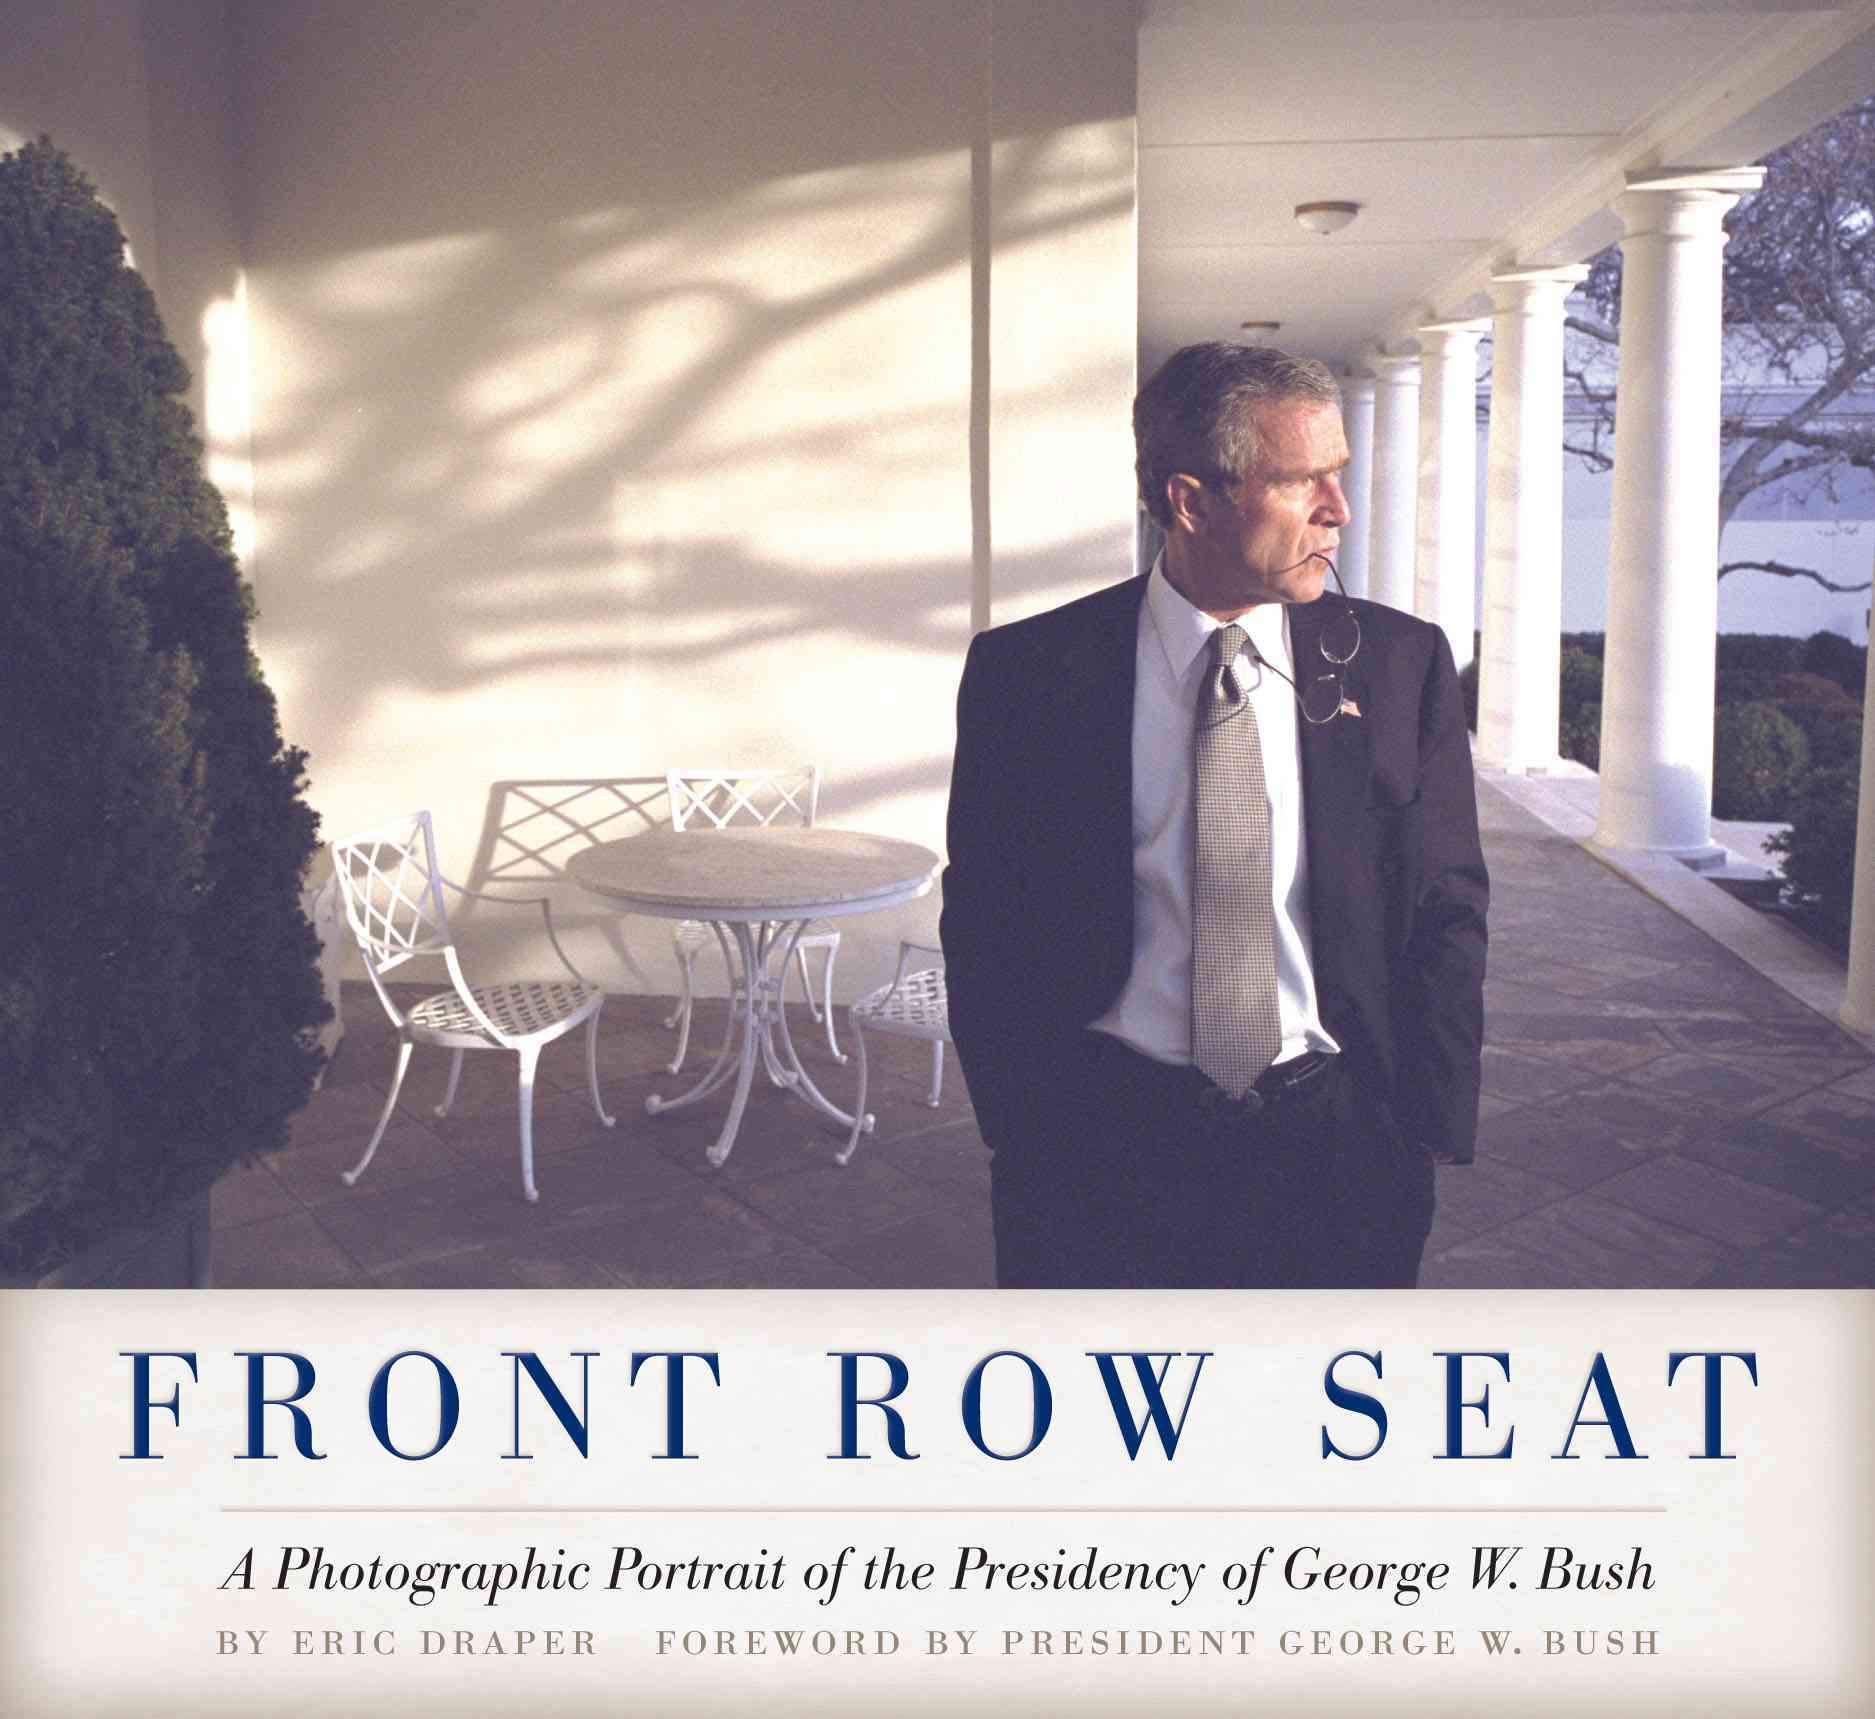 Front Row Seat: A Photographic Portrait of the Presidency of George W. Bush (Hardcover)